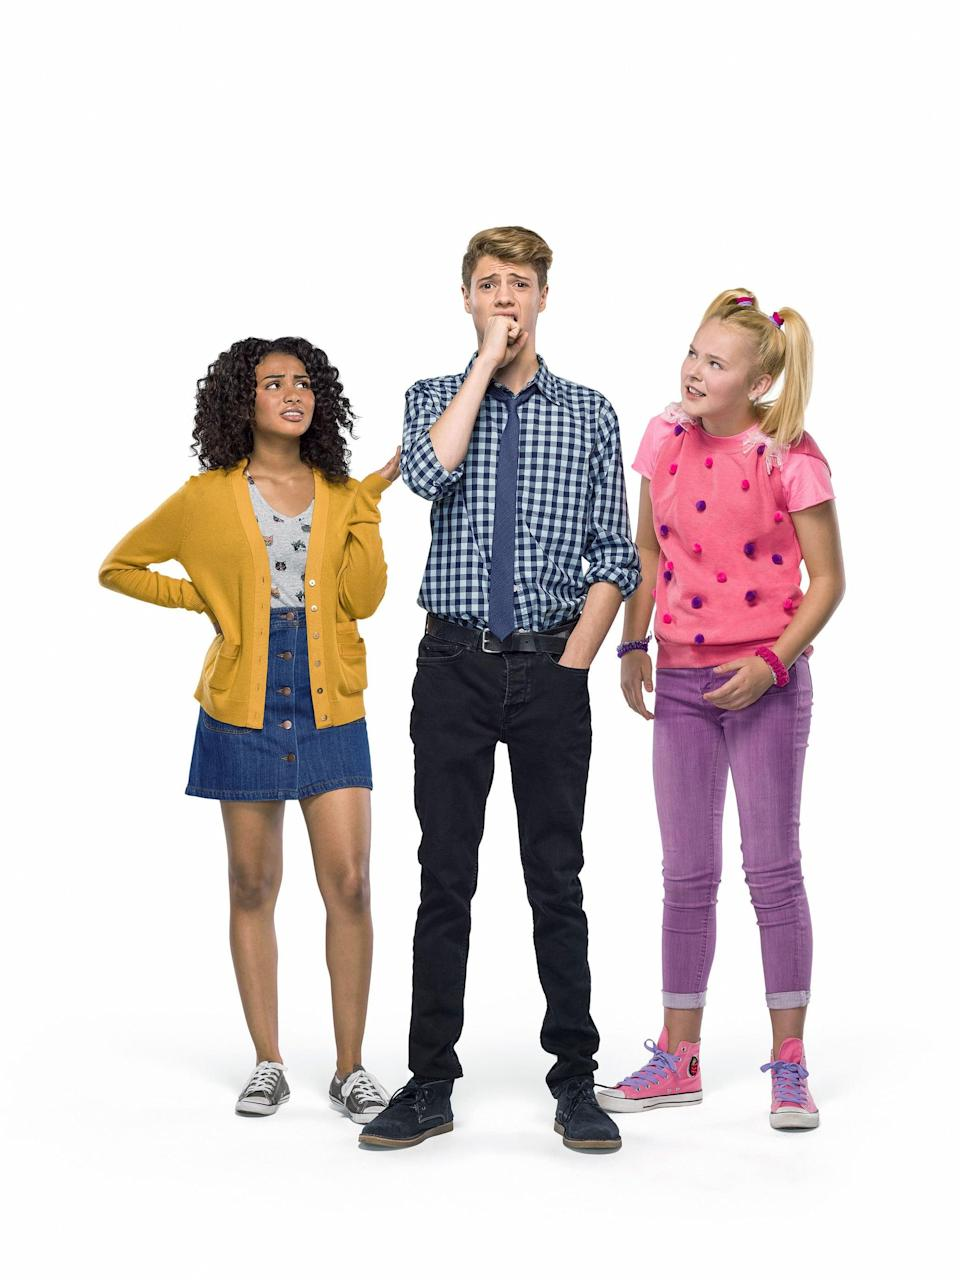 """<p><strong>Hulu's Description:</strong> """"Nice guy Jeremy (Jace Norman) loses his ability to keep his thoughts to himself and can't help but say everything out loud. The only way to fix his problem will be the hardest thing he'll have to do: win the school election.""""</p> <p><span>Stream <strong>Blurt</strong> on Hulu!</span></p>"""